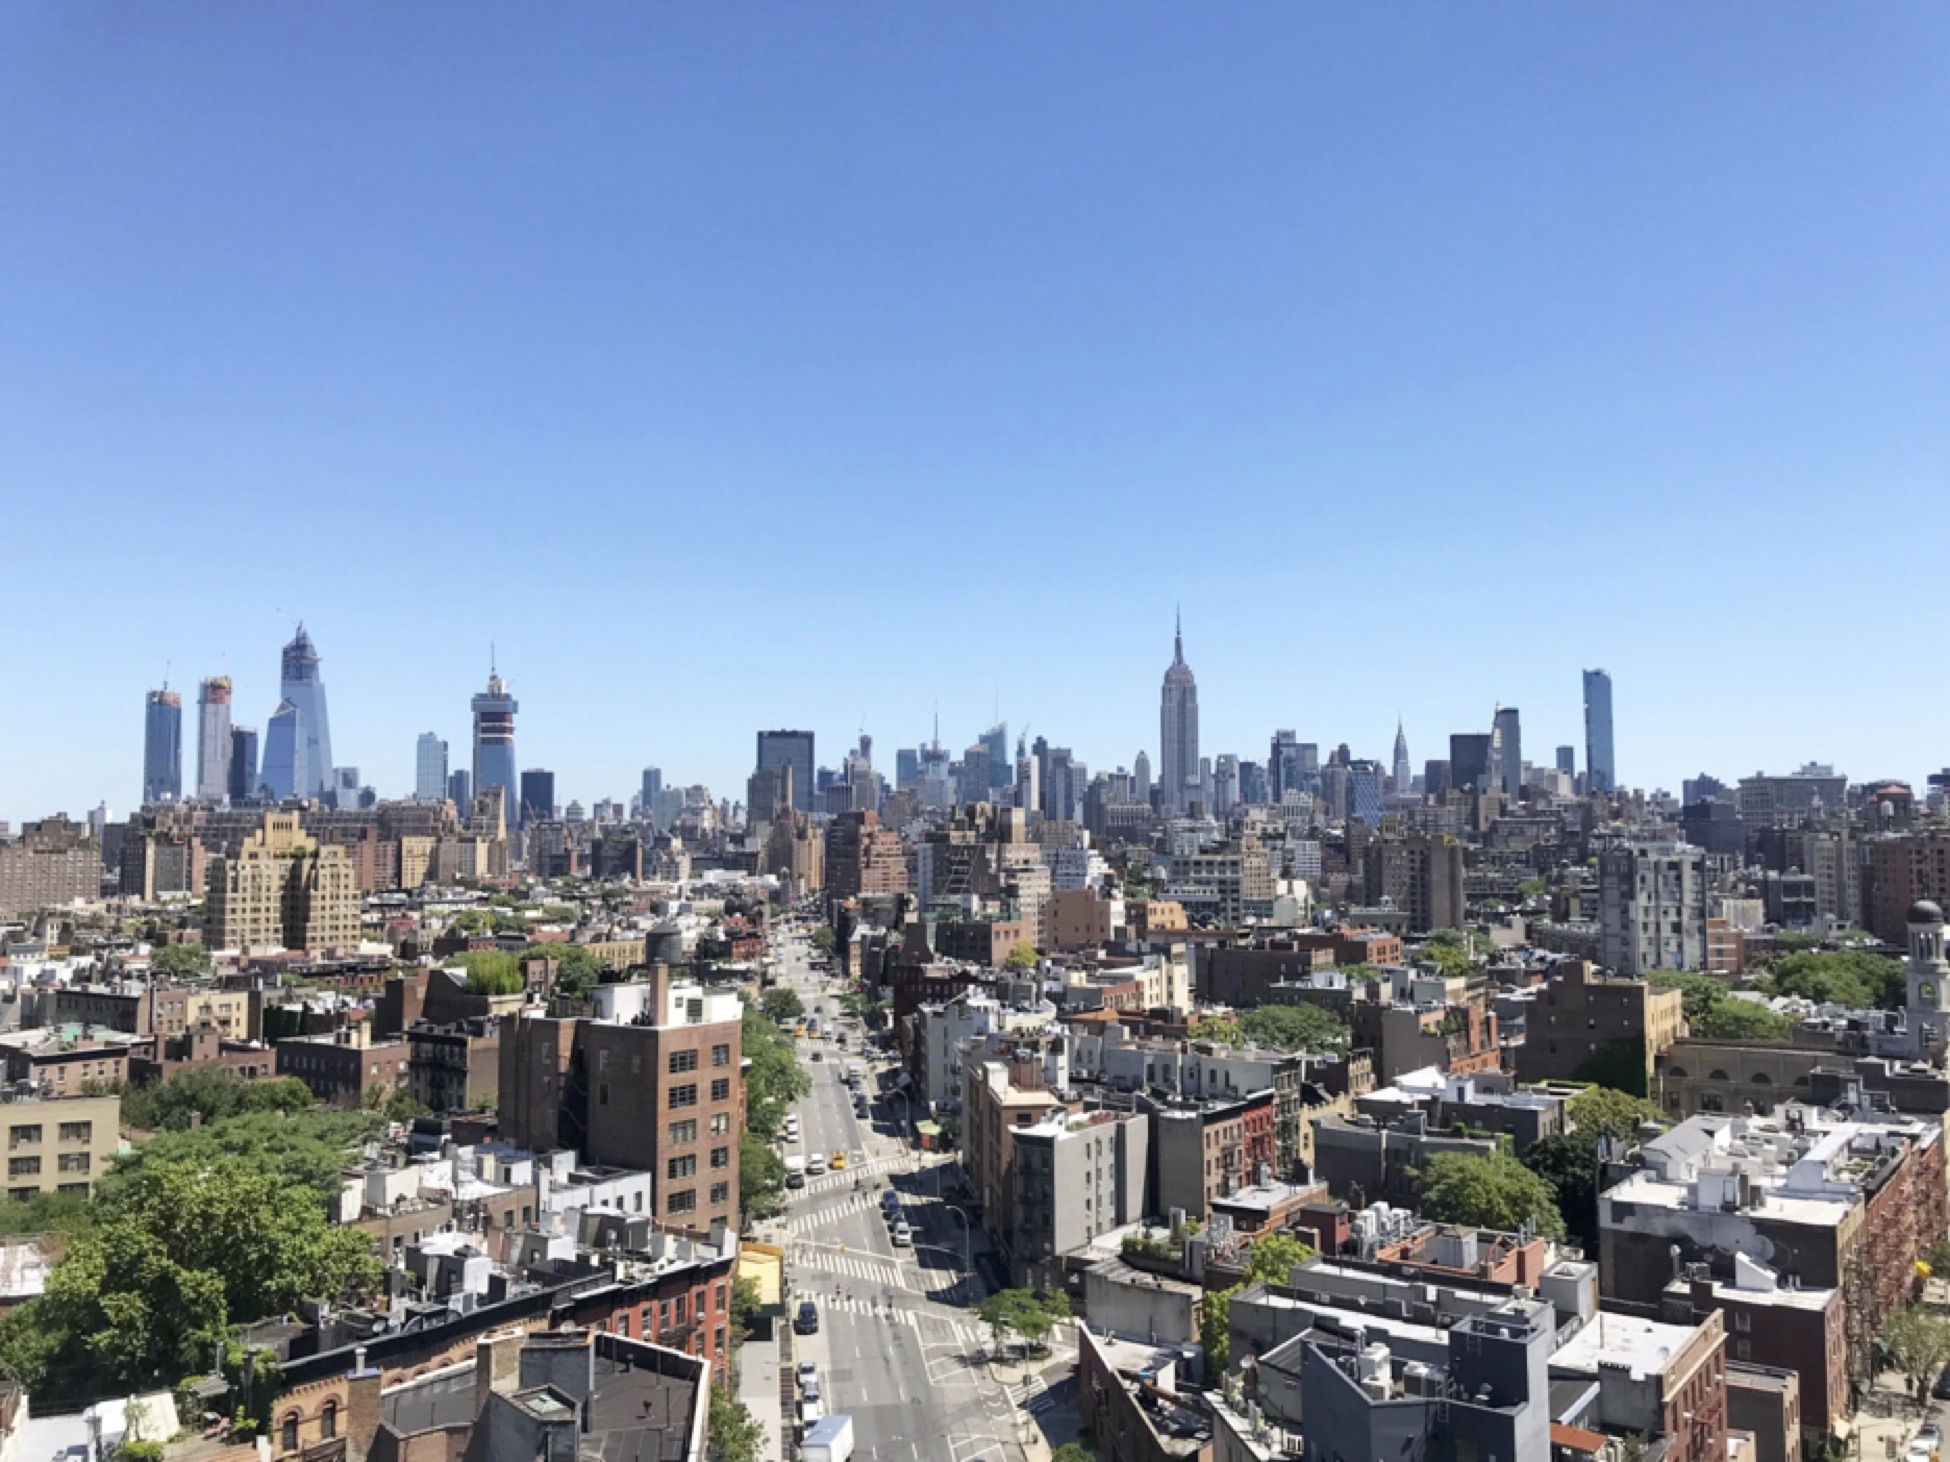 View of New York City from the Squarespace roof terrace